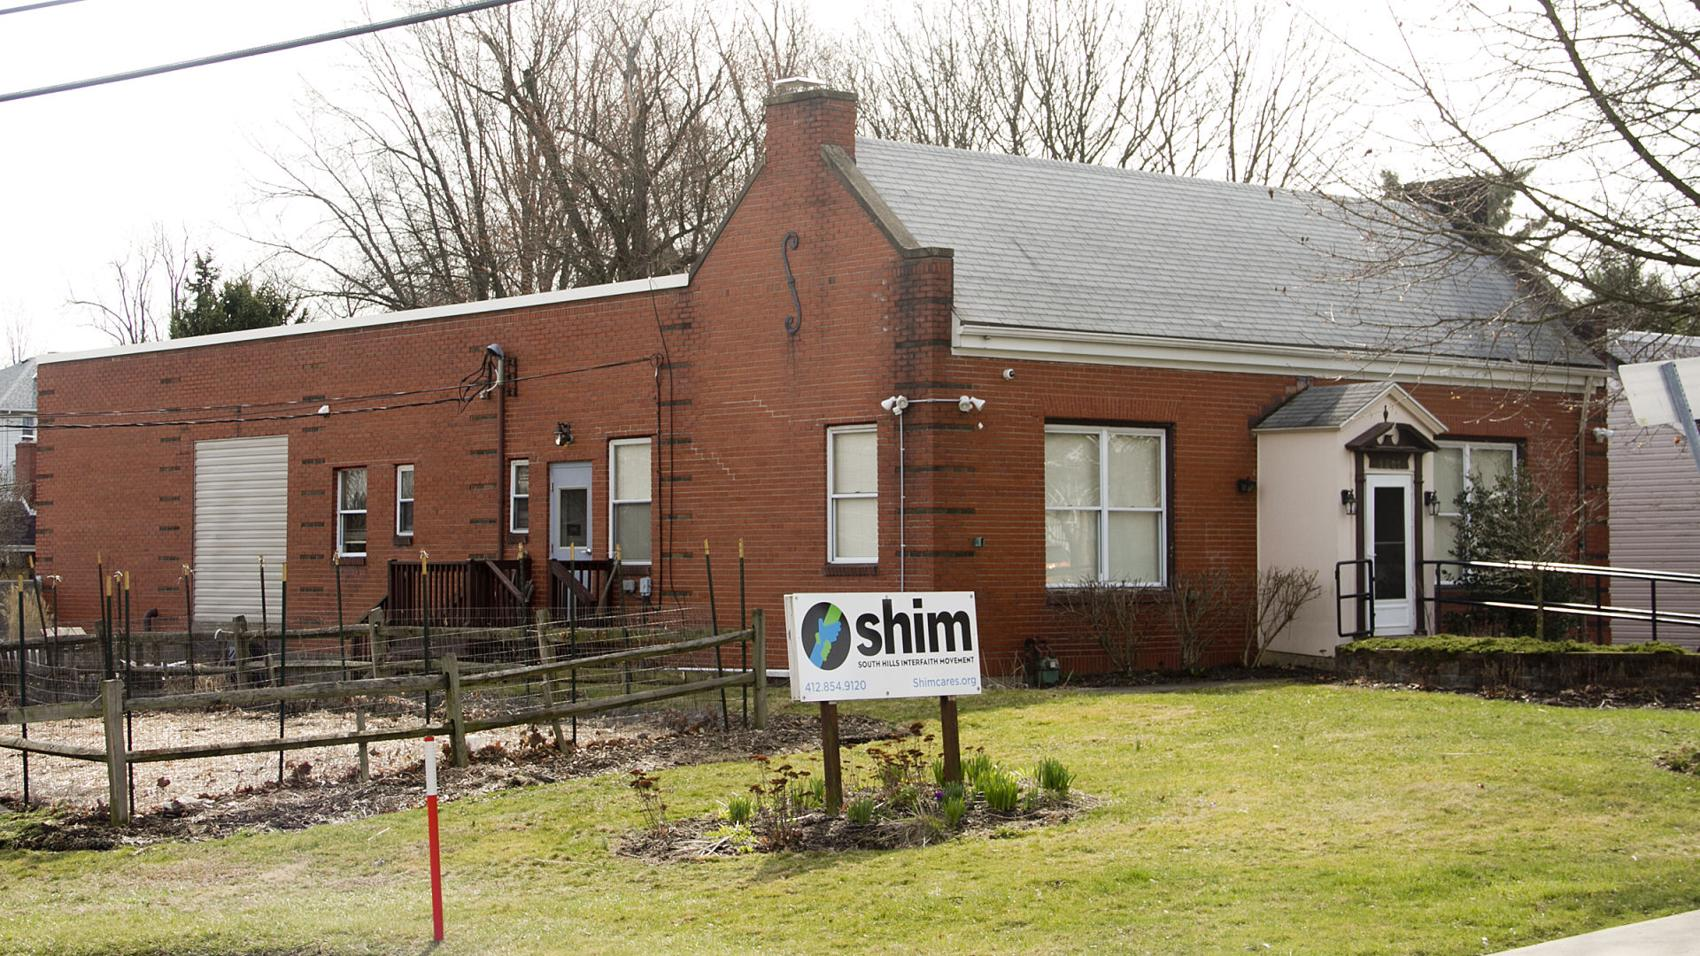 SHIM Bethel Park Location